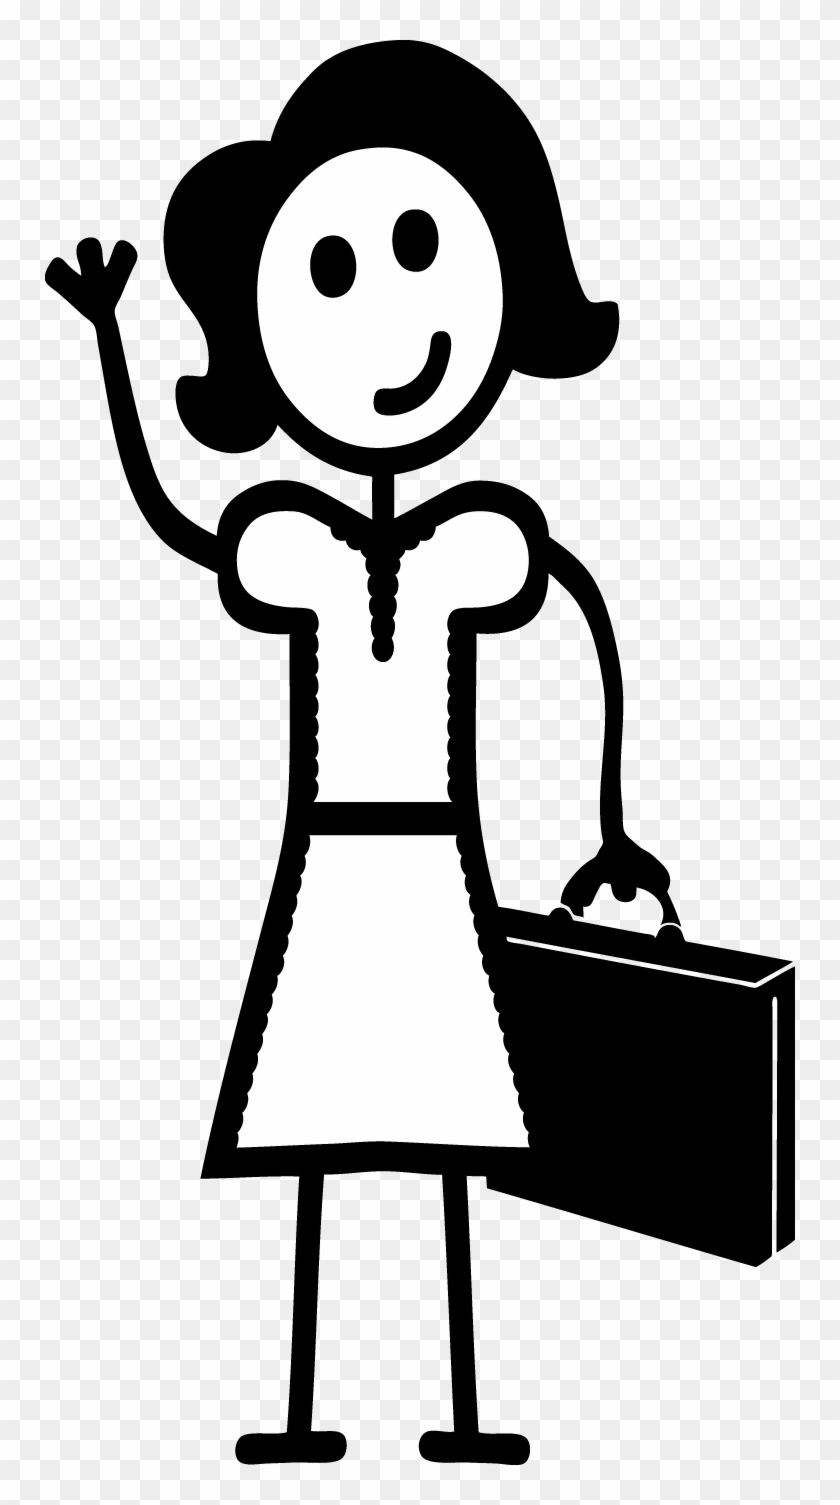 Mom Mother Women Mommy Adult Sticker Decal Car Window Stick Figure Working Woman Free Transparent Png Clipart Images Download [ 1505 x 840 Pixel ]